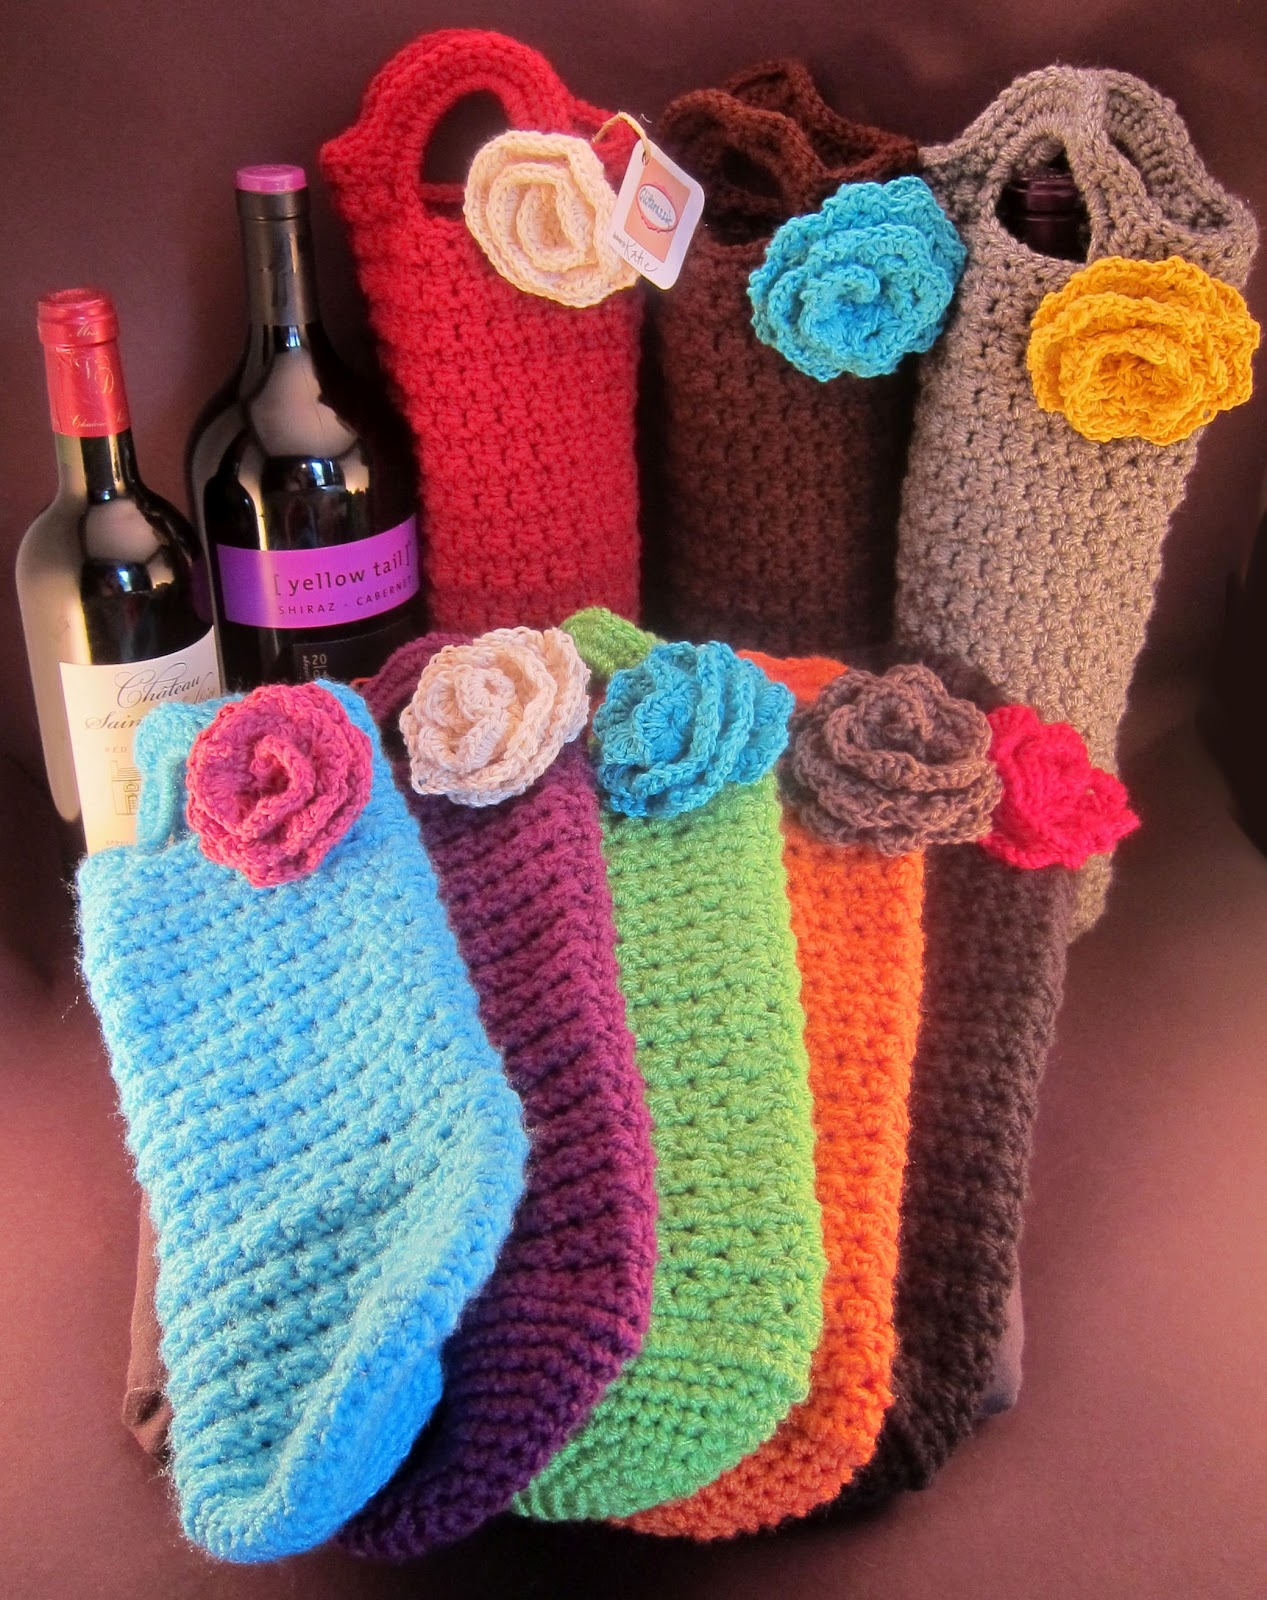 Free Crochet Patterns Gift Ideas : Gift Ideas Archives - Knit And Crochet Daily